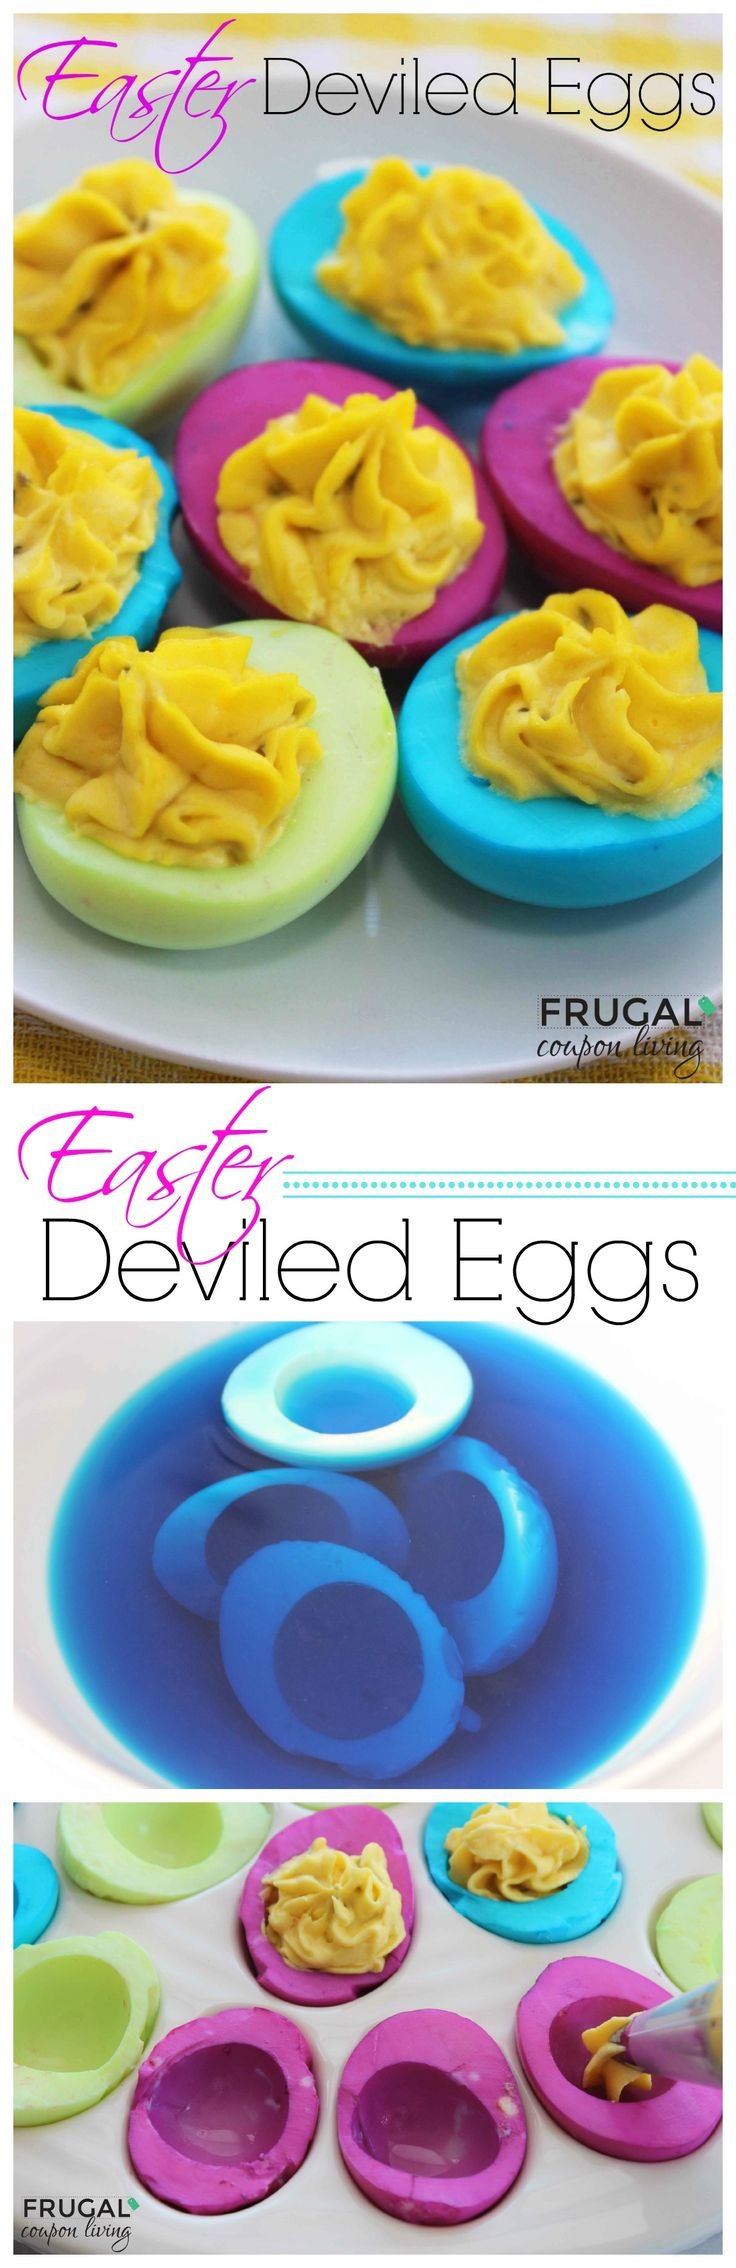 Easter Deviled Eggs  Tutorial On How To Color The Egg Whites Of Your Hard  Boiled